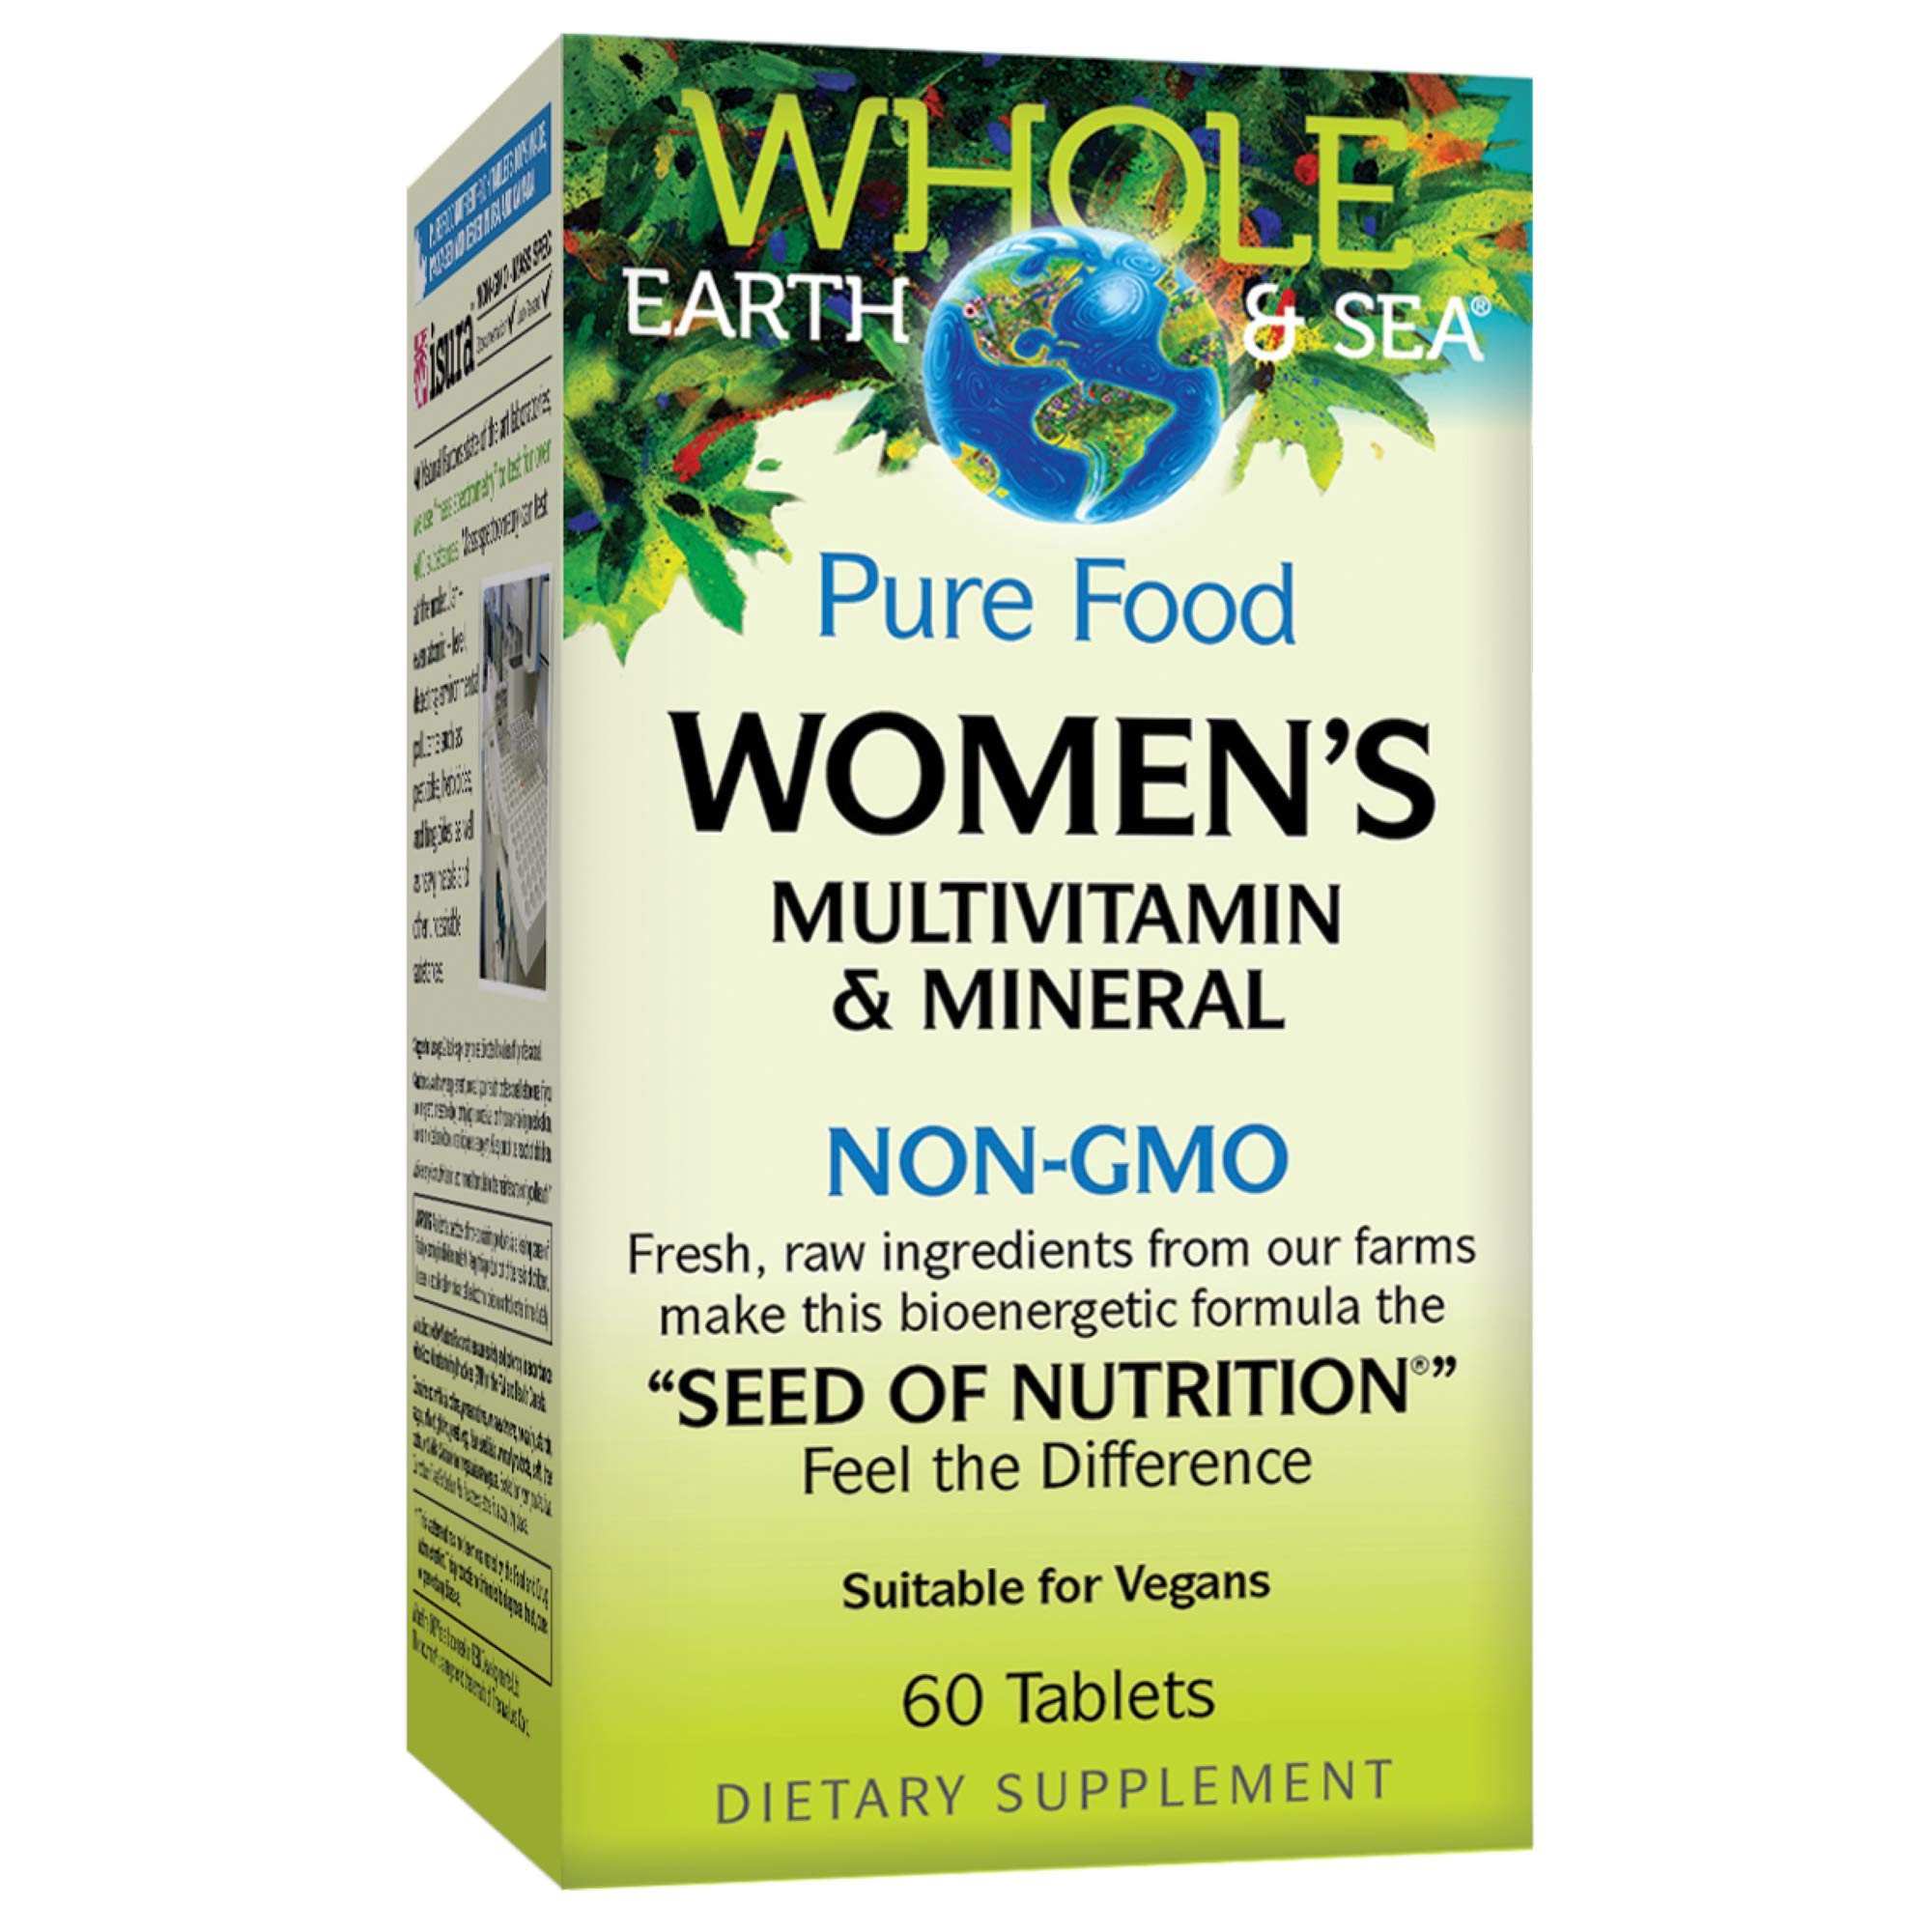 Whole Earth & Sea from Natural Factors, Women's Multivitamin & Mineral, Whole Food Supplement, Vegan and Gluten Free, 60 Tablets (30 Servings) by Natural Factors